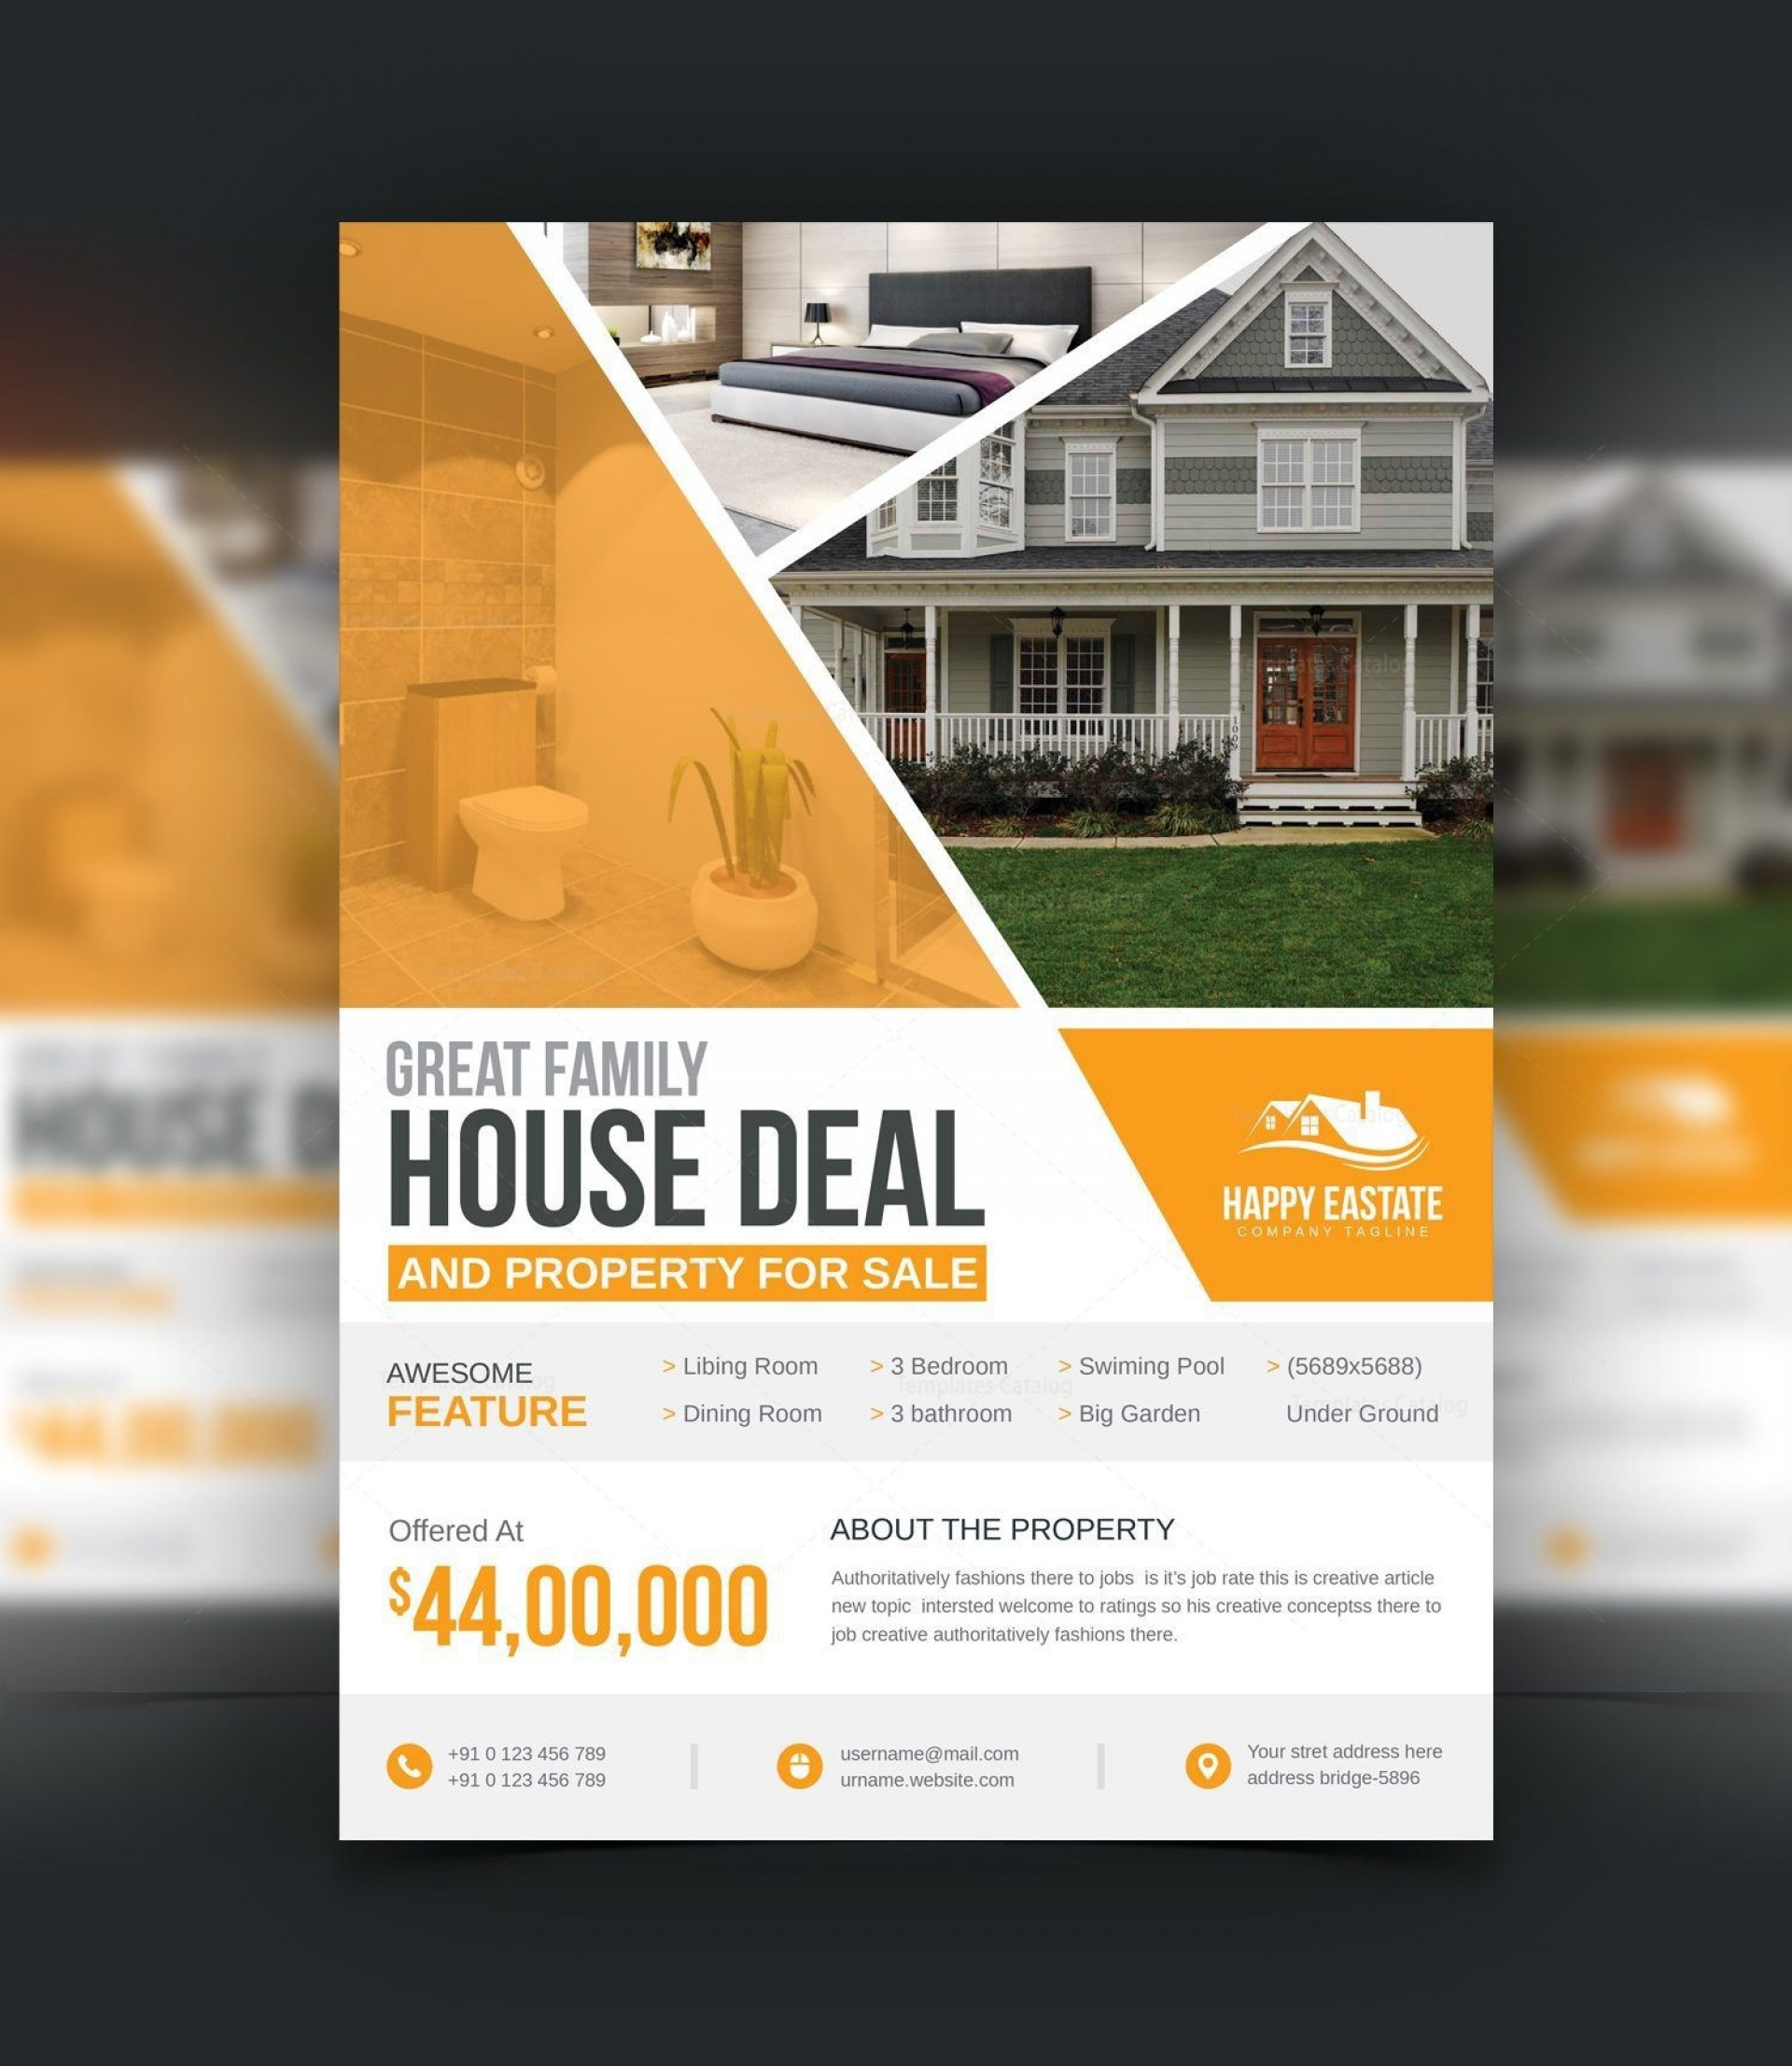 004 Awful Open House Flyer Template Highest Clarity  Templates Word Free School Microsoft1920